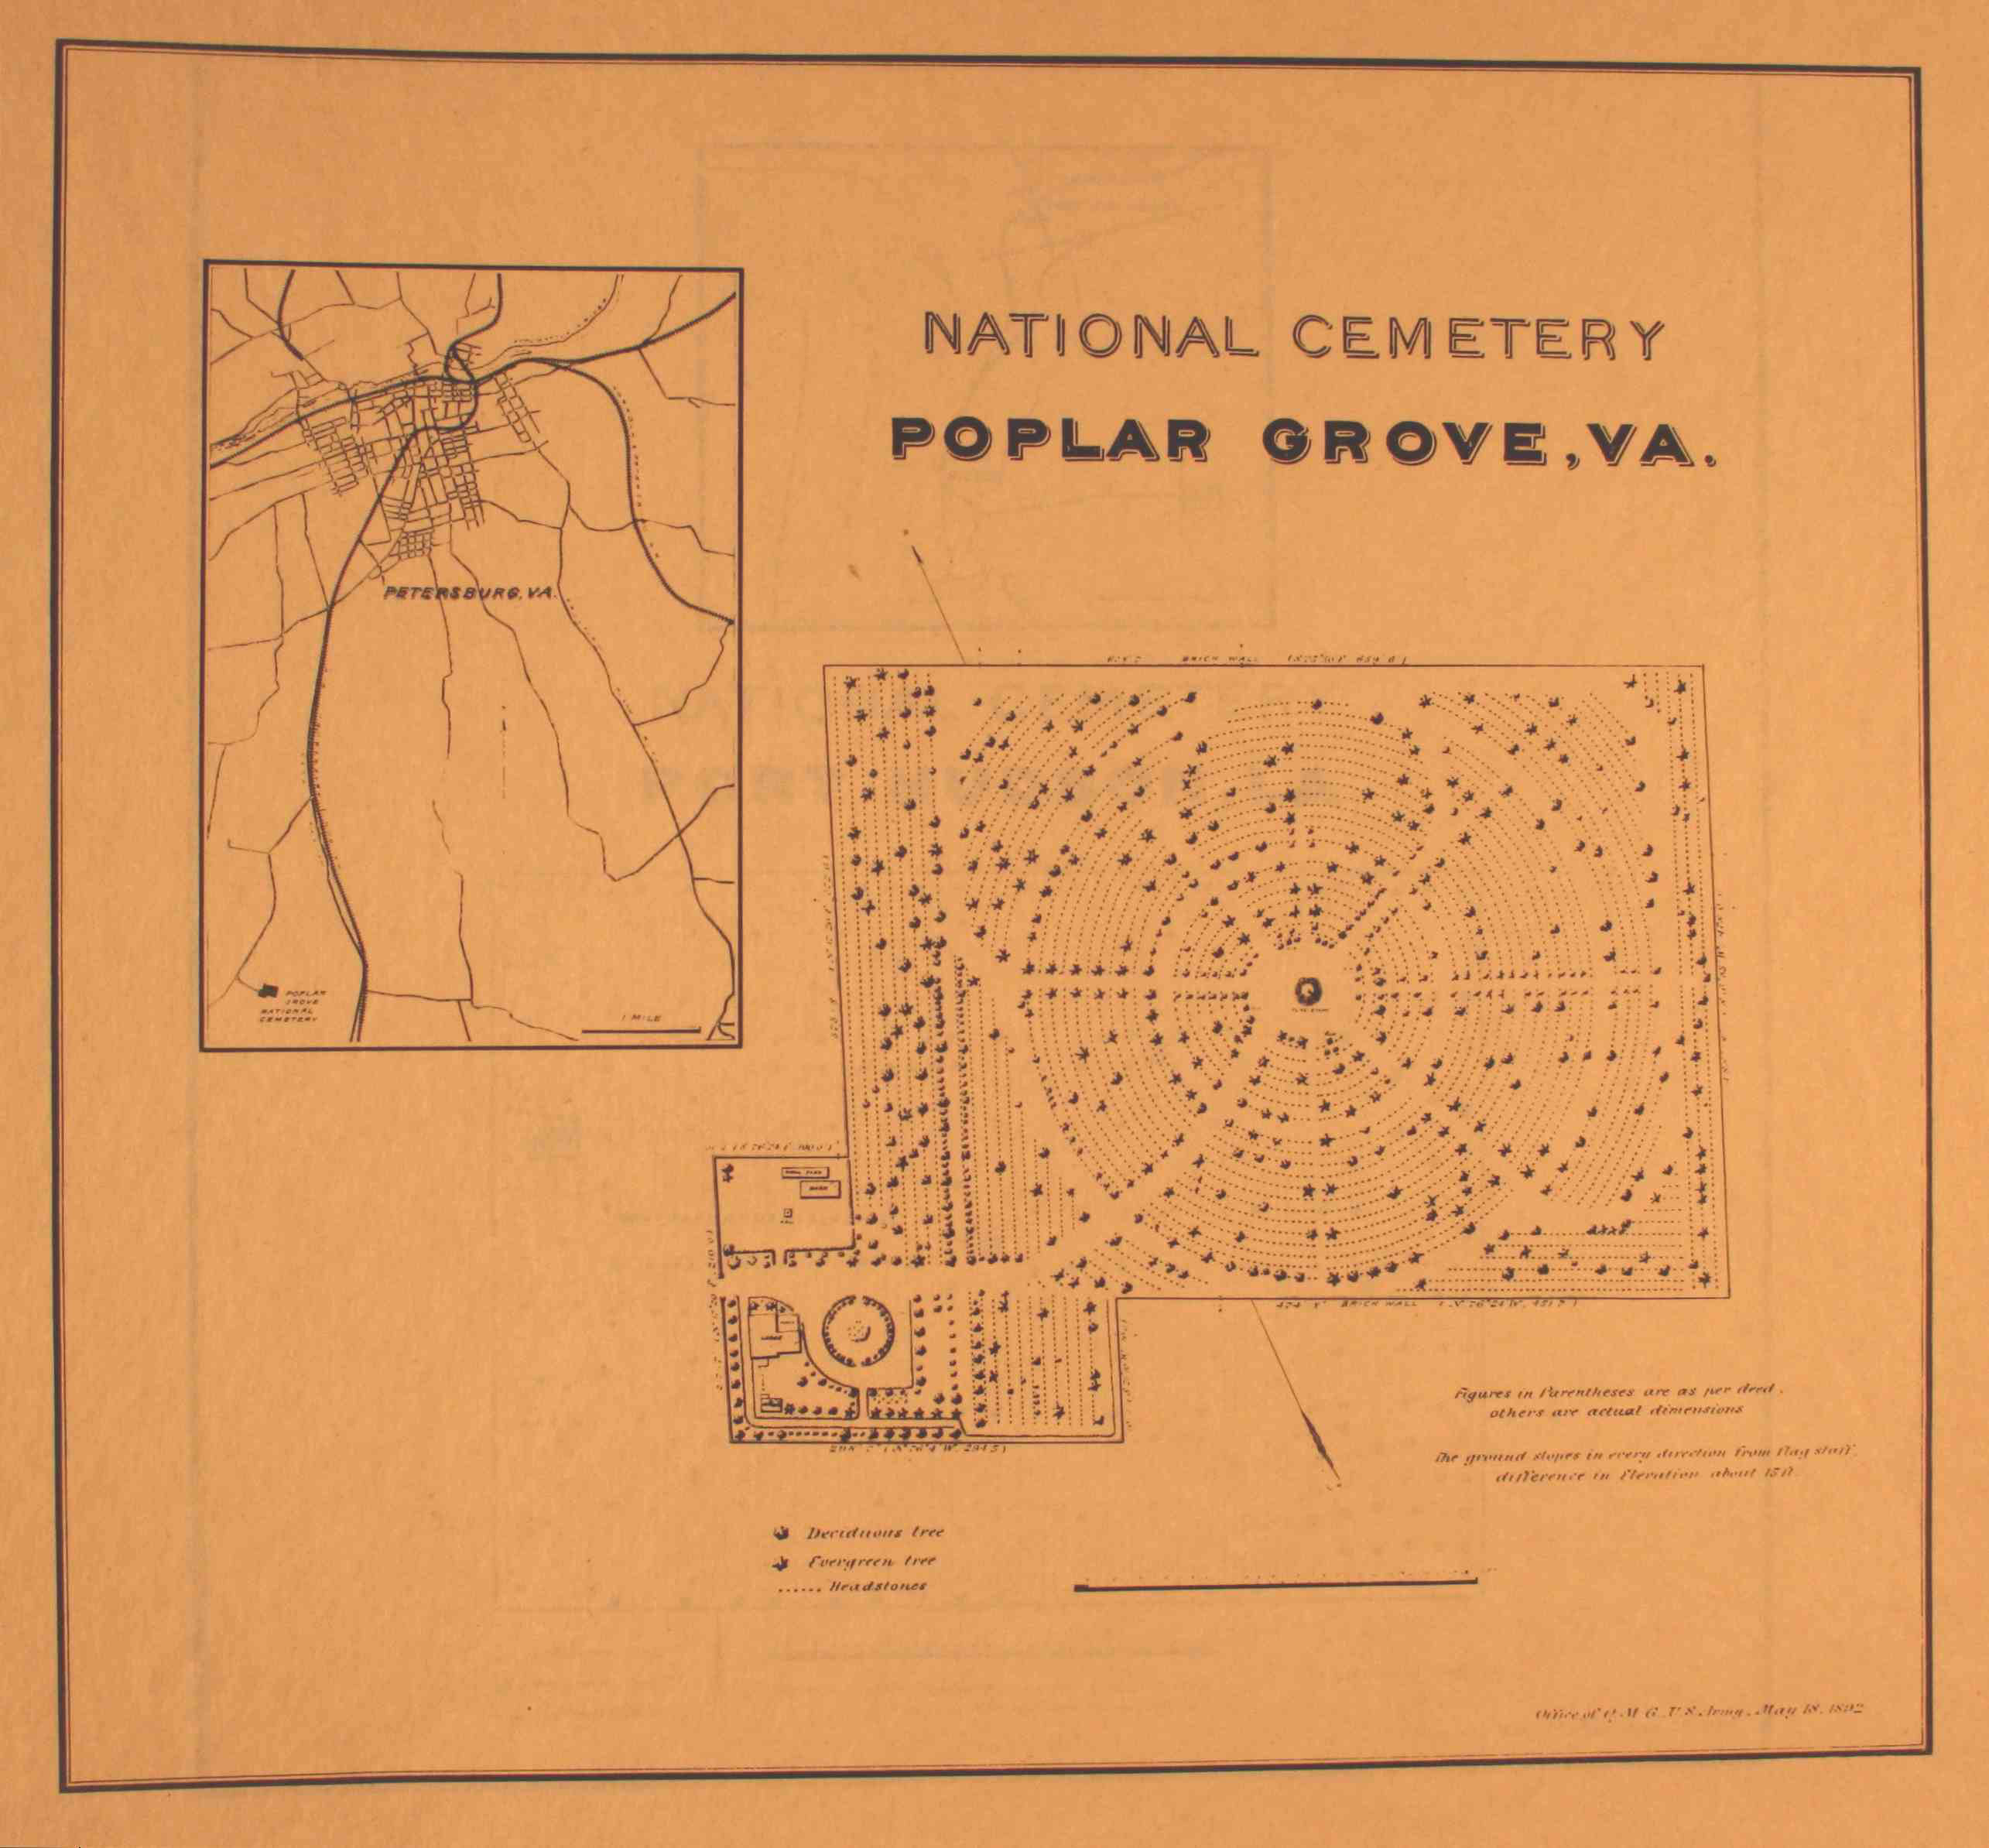 1893 site plan of poplar grove national cemetery courtesy of the national archives and records administration click on image to enlarge